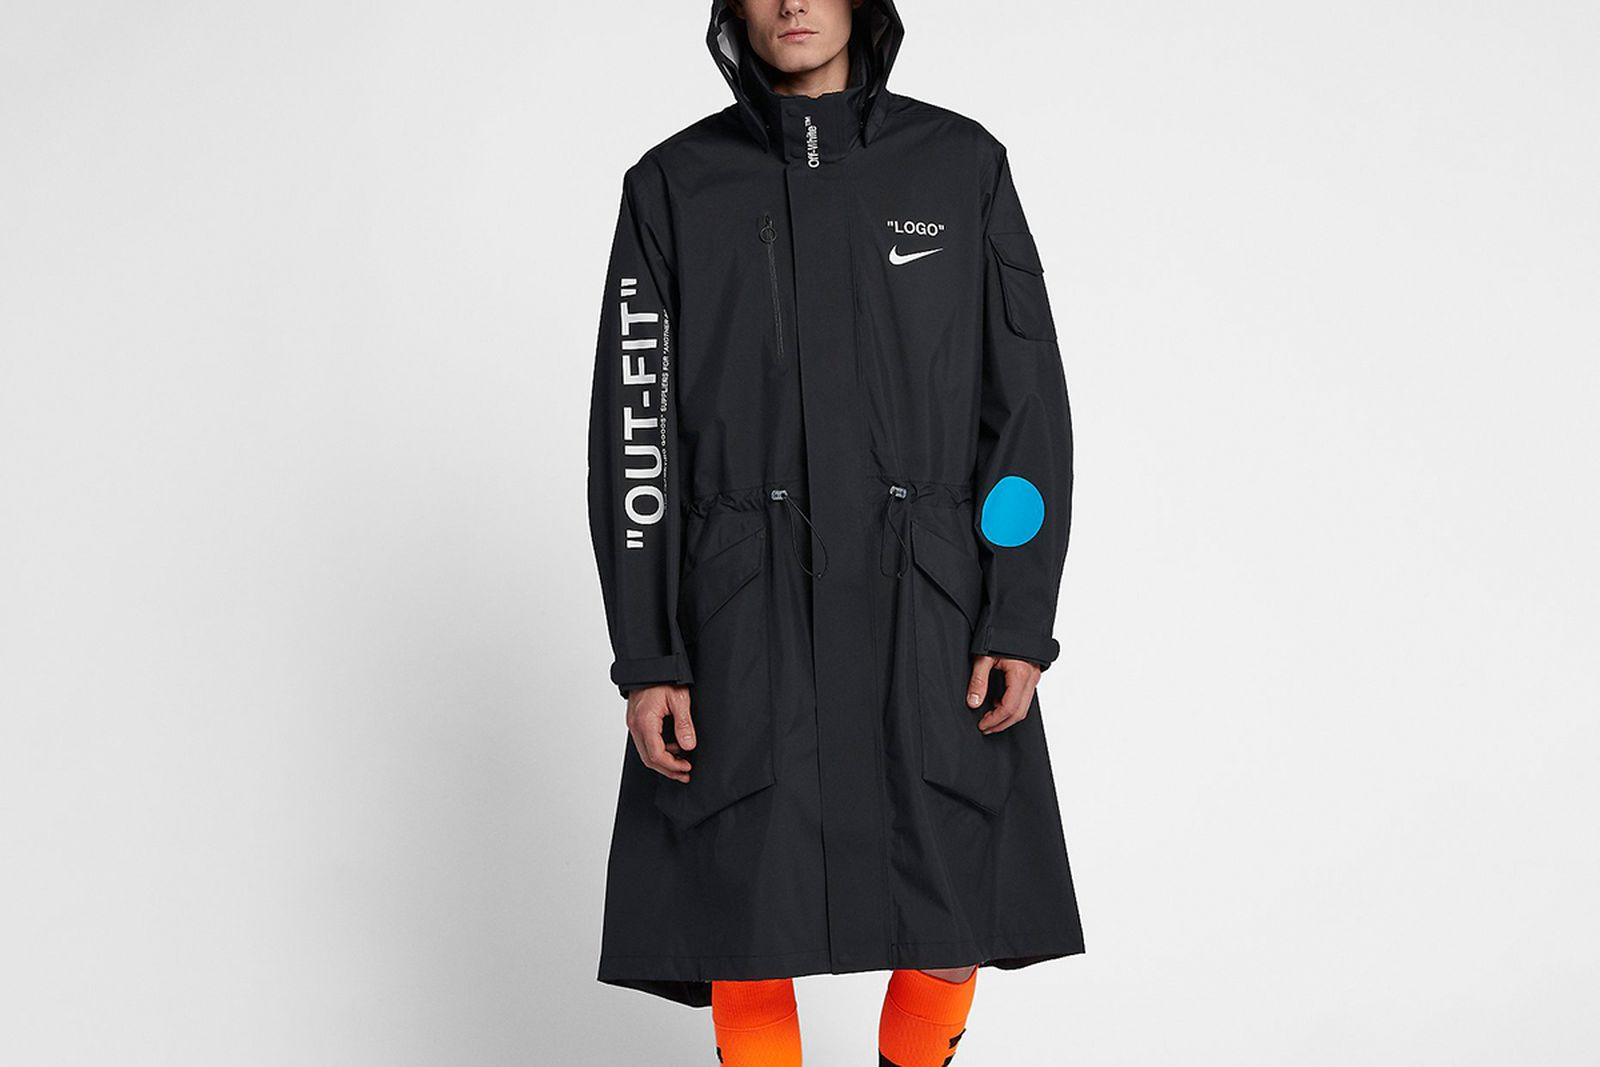 jacket 2018 FIFA World Cup Nike OFF-WHITE c/o Virgil Abloh